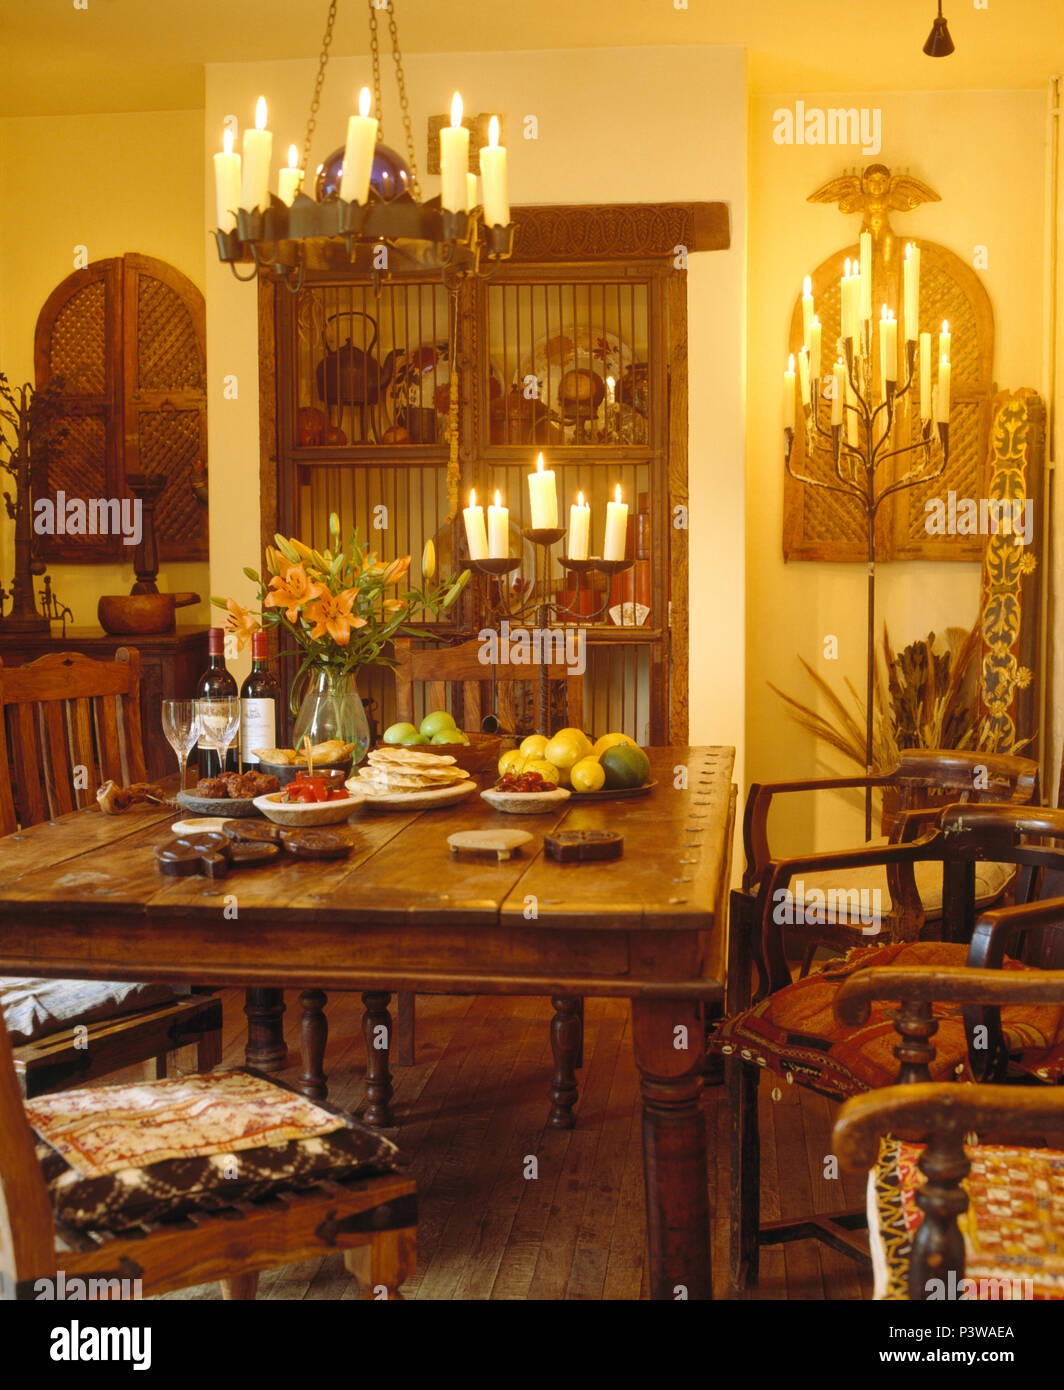 Fabulous Lighted Candles In Chandelier Above Table In Country Dining Download Free Architecture Designs Pushbritishbridgeorg